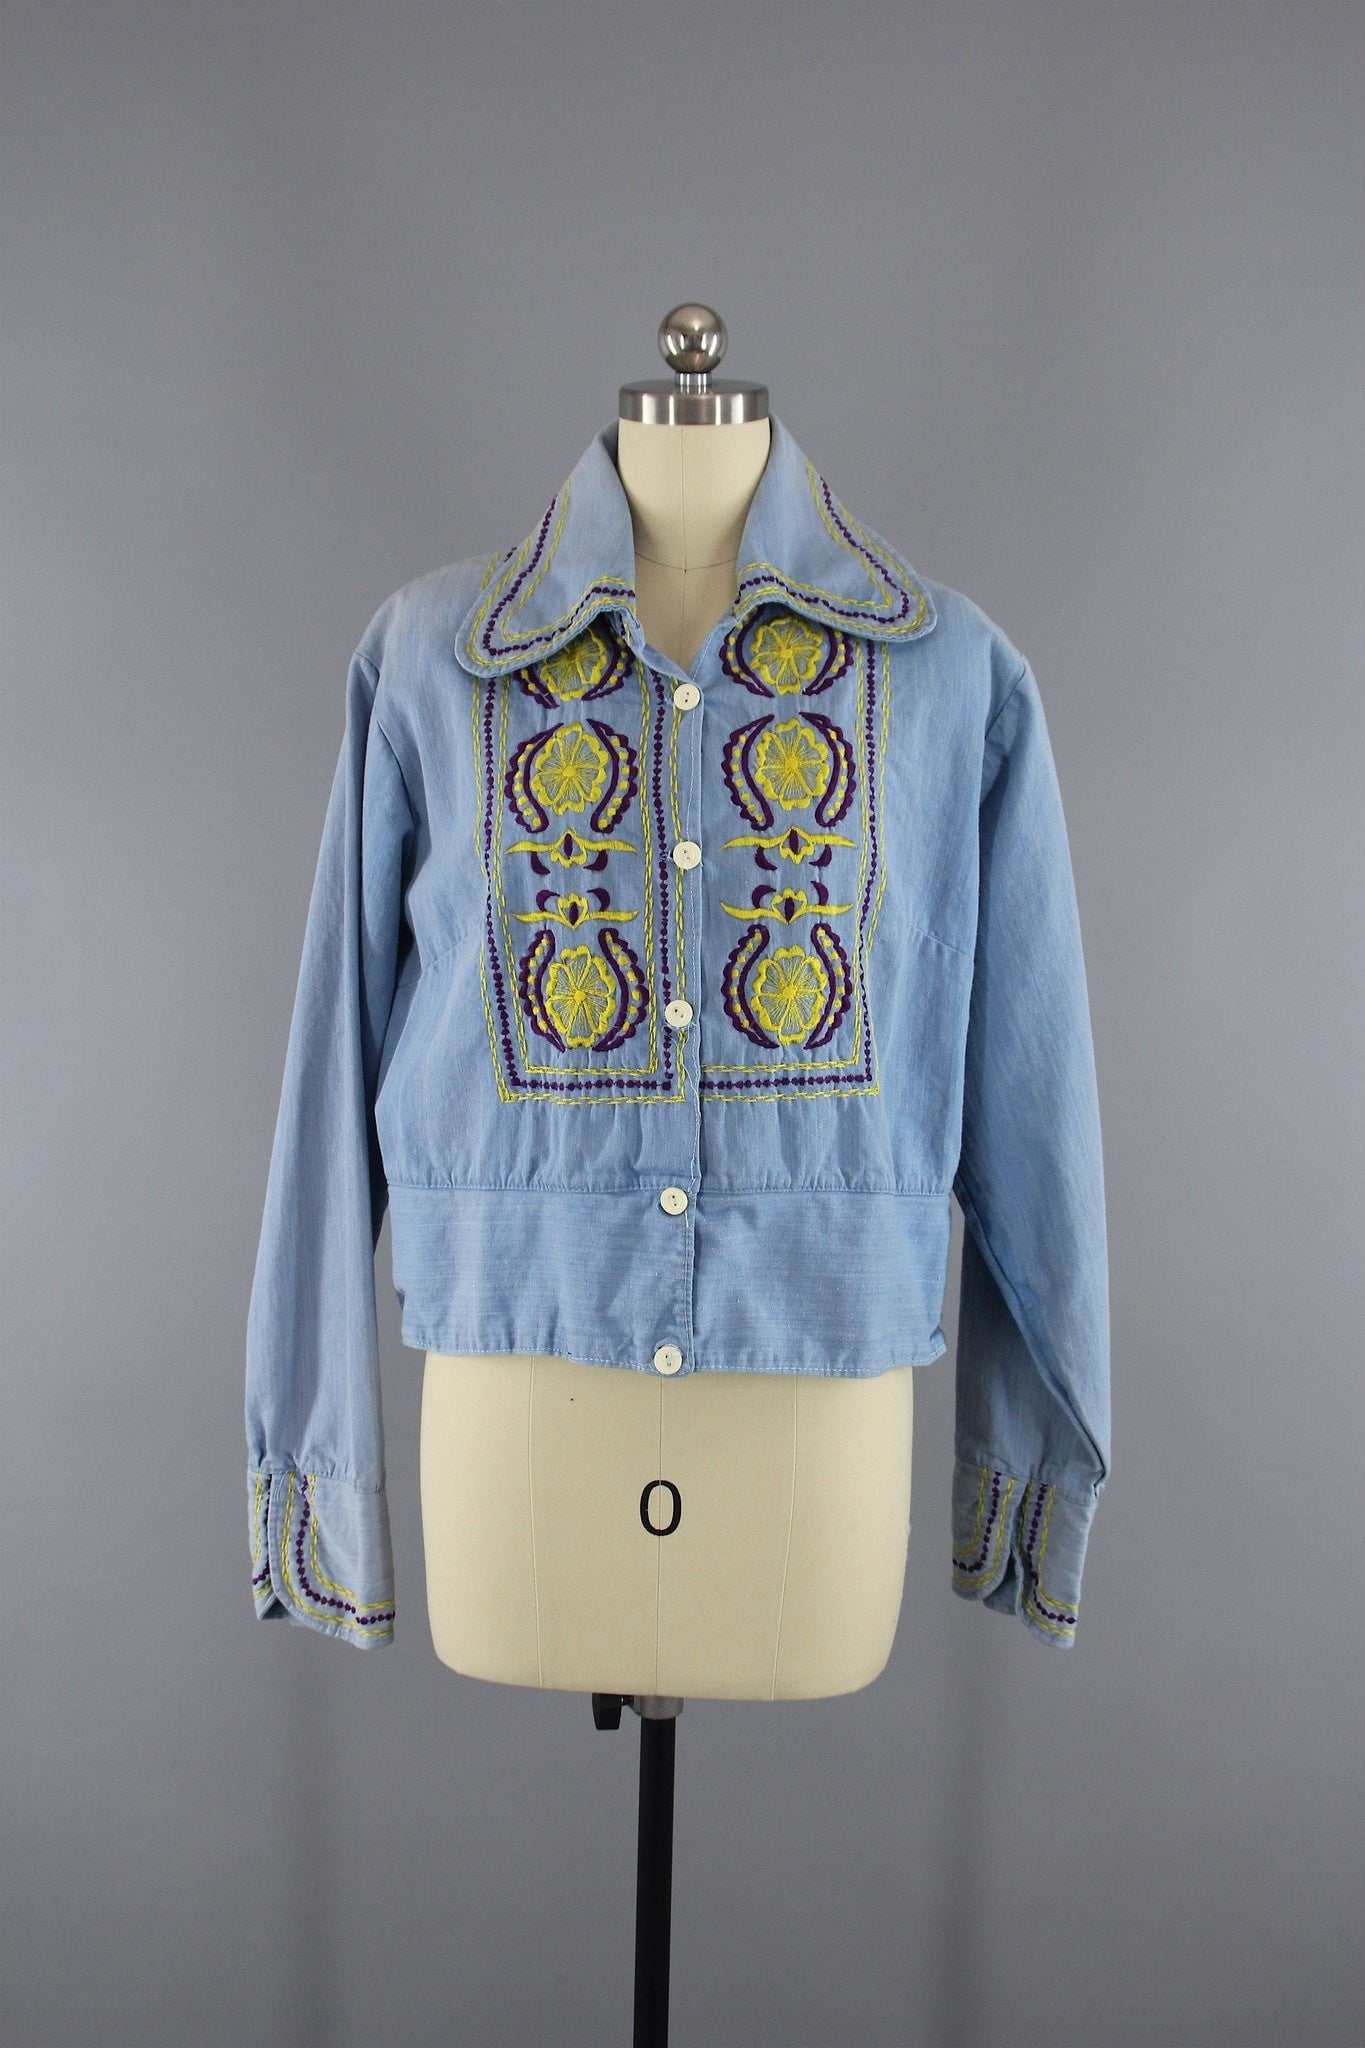 Vintage 1960s - 1970s Denim Embroidered Jacket Outerwear ThisBlueBird